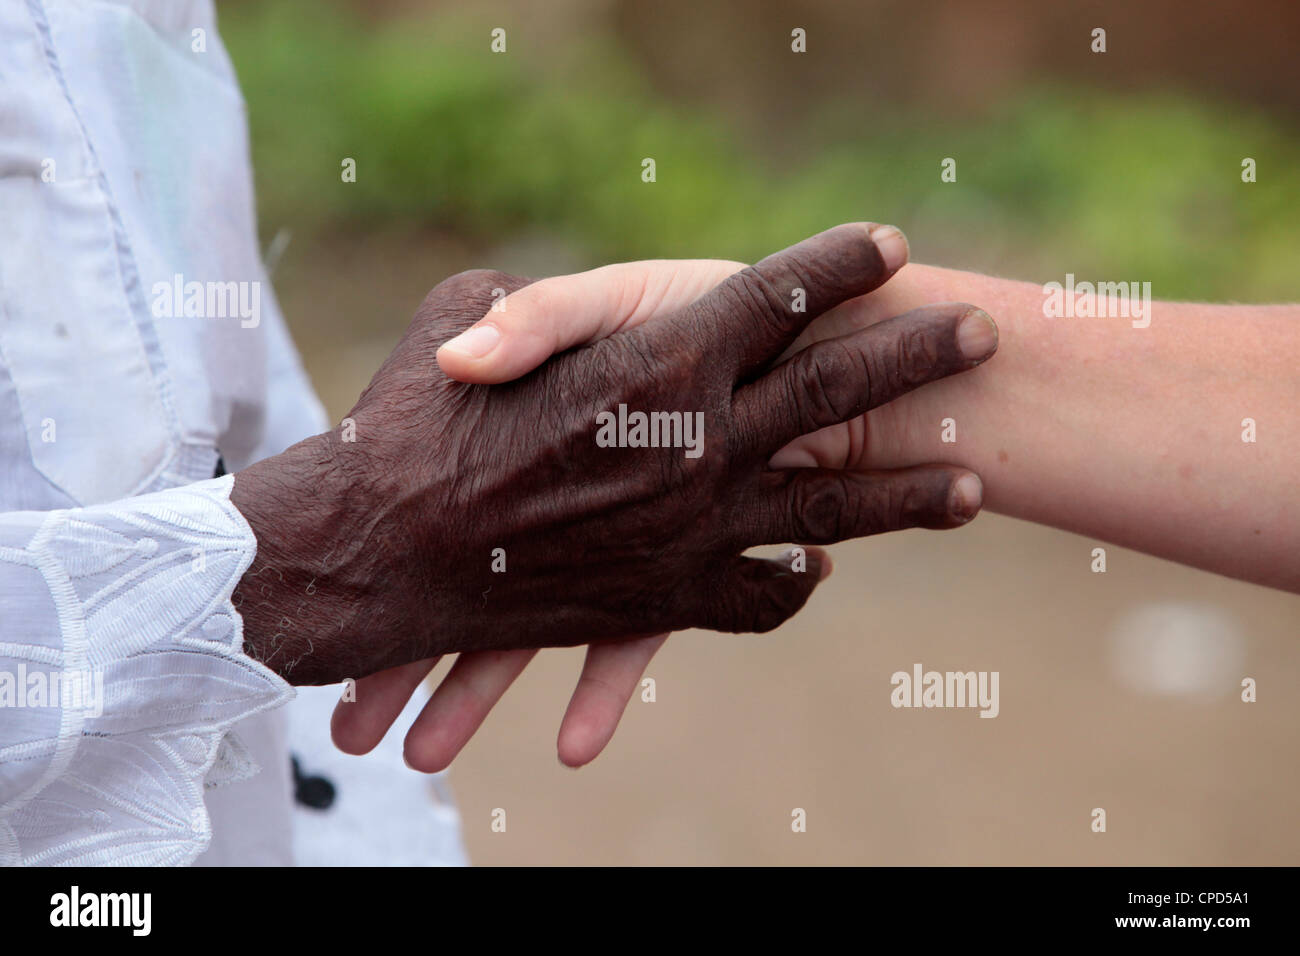 Handshake, Lome, Togo, West Africa, Africa Stock Photo